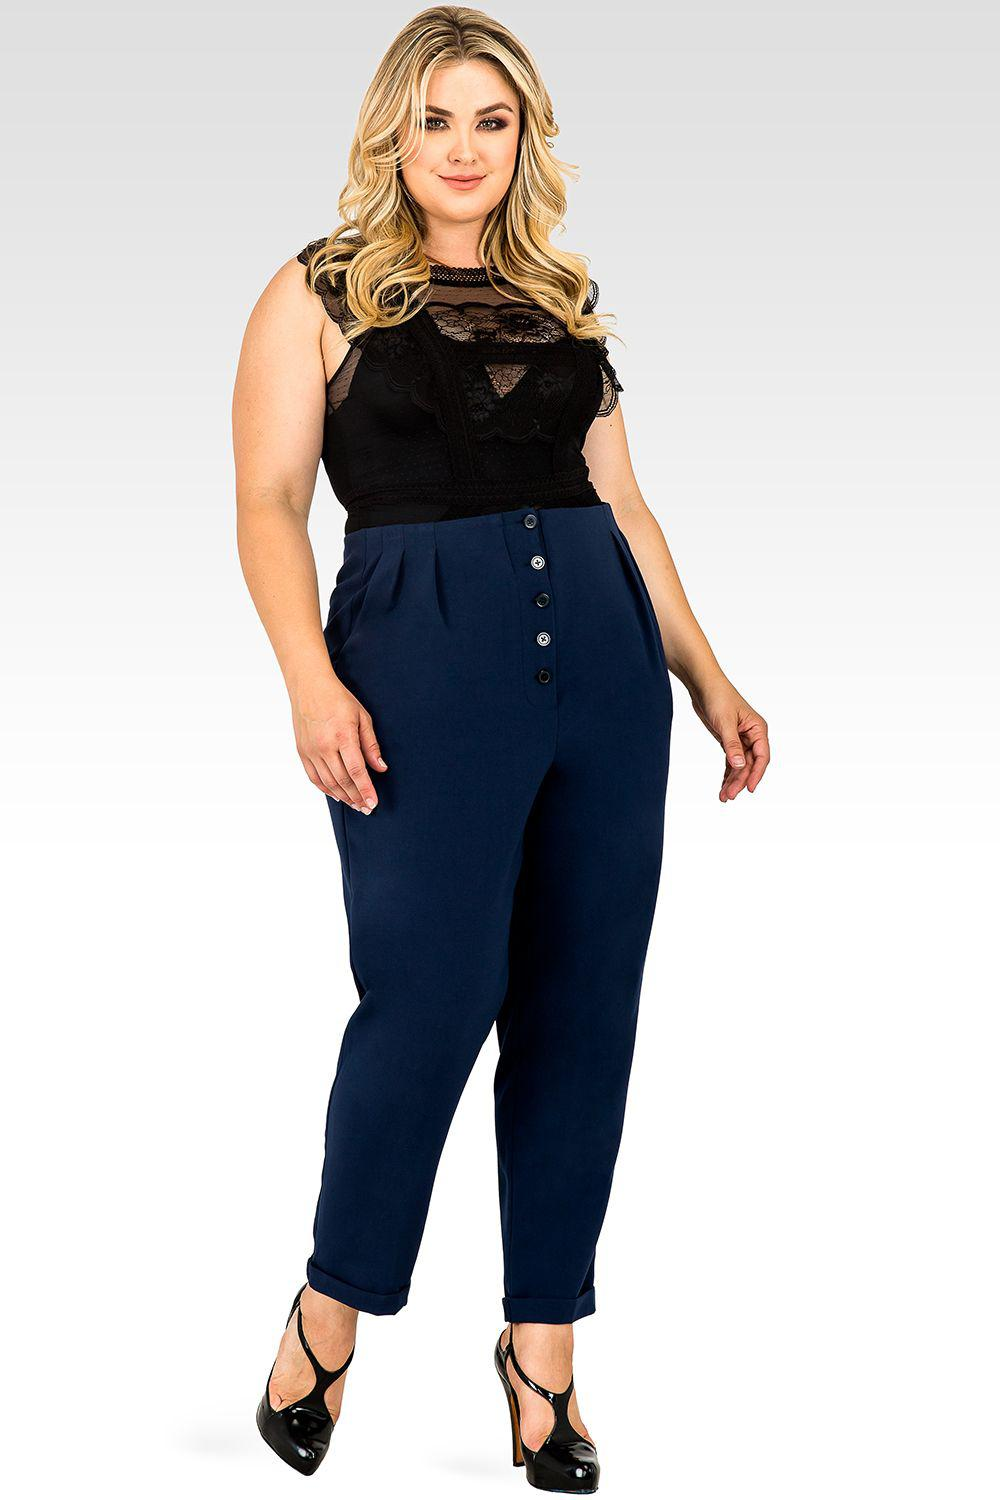 Plus Size Francine Midnight Blue Hollywood Waist Cropped Button-Up Carrot Trouser Pants